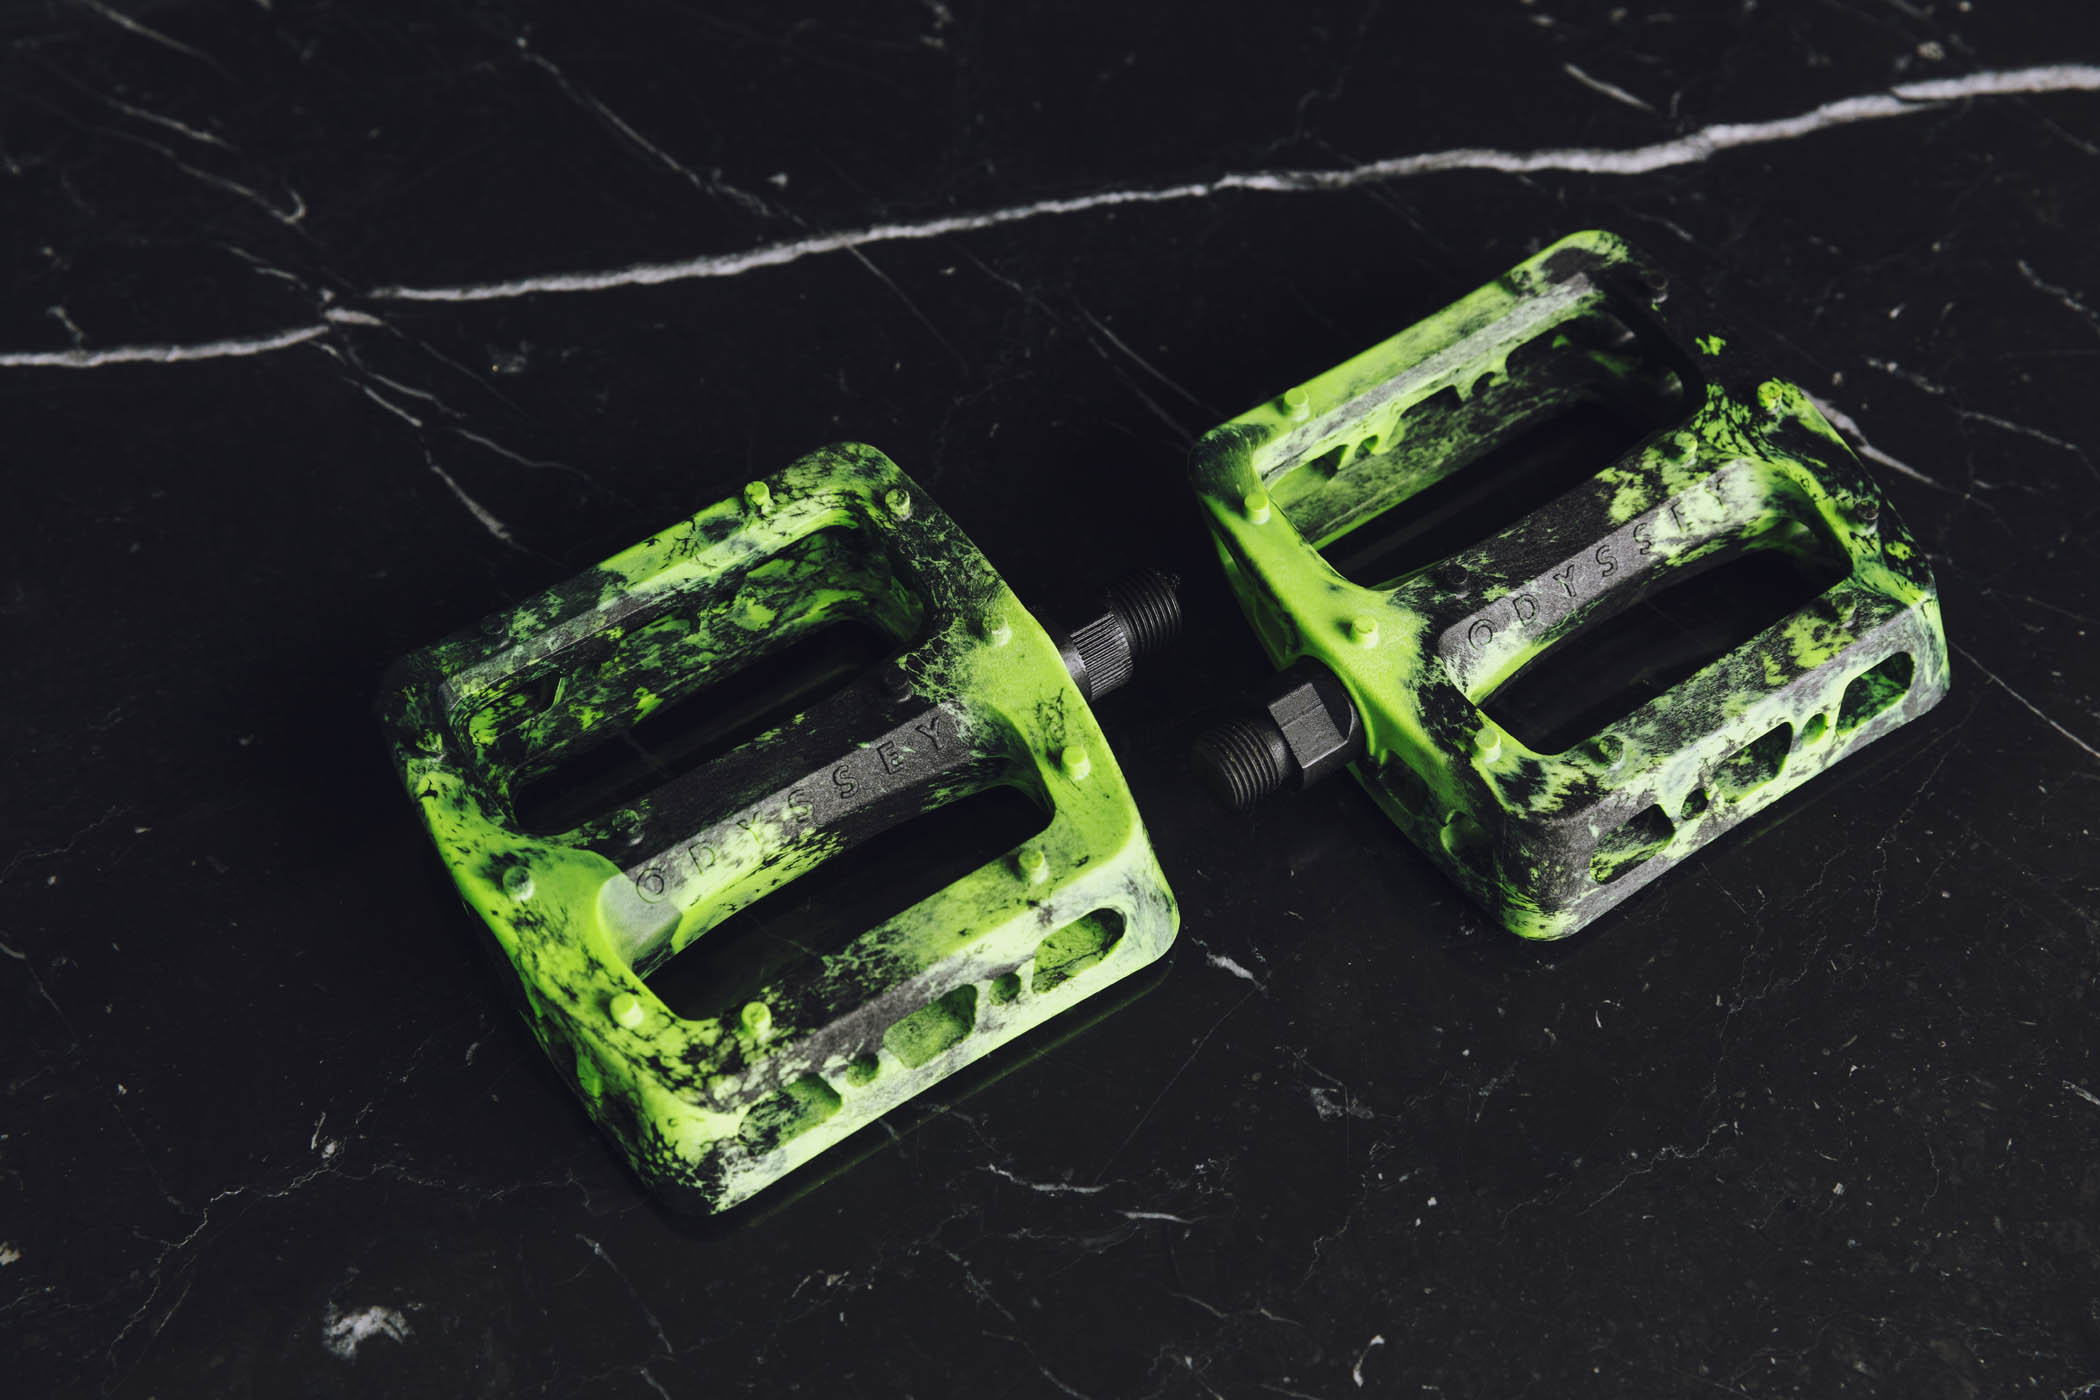 ODYSSEY TWISTED PRO PEDALS – REVIEW